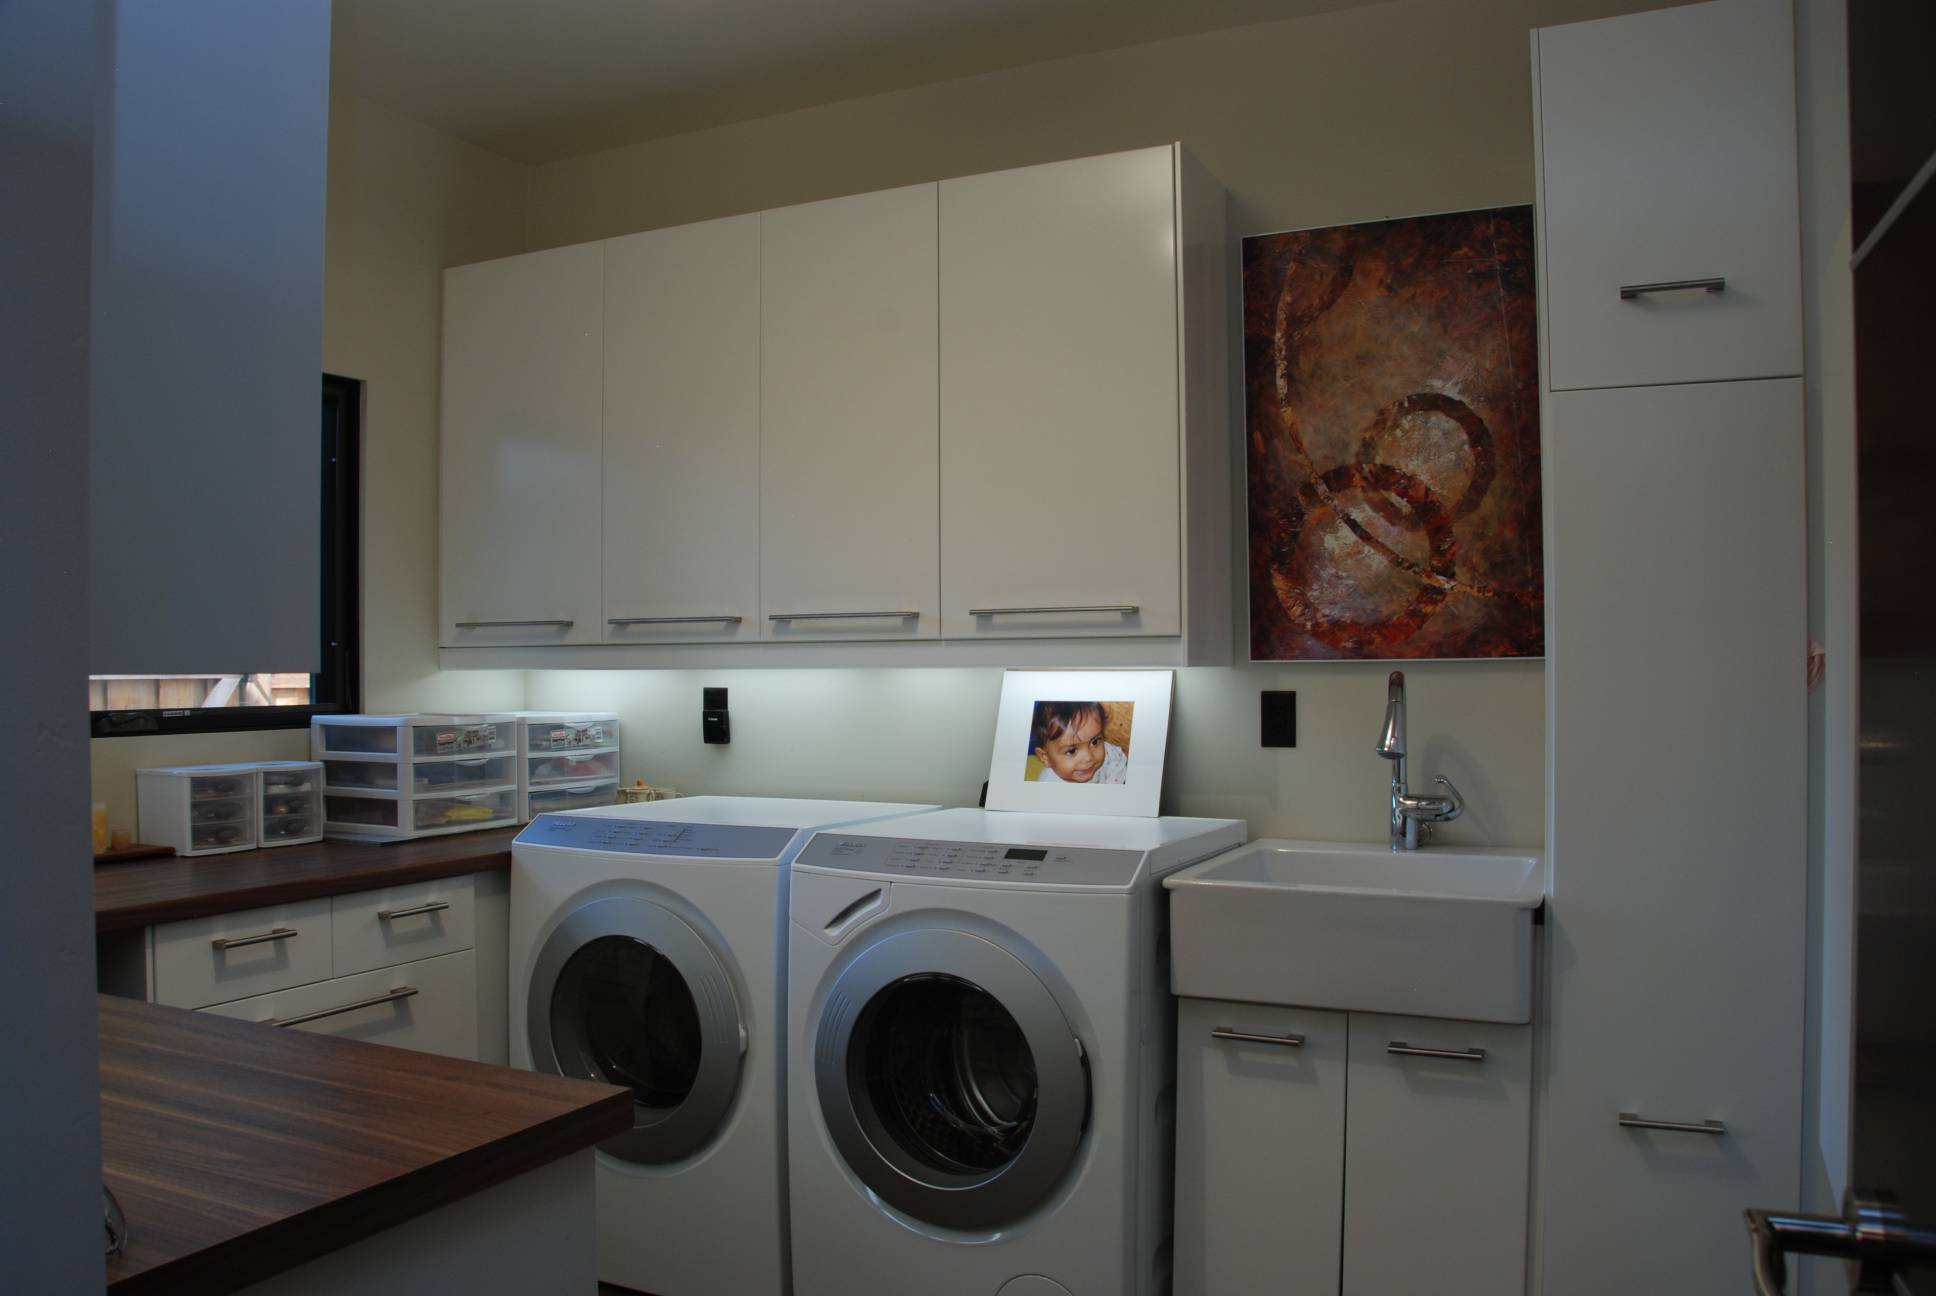 Utility washer dryer room storage, architect work, Los Altos